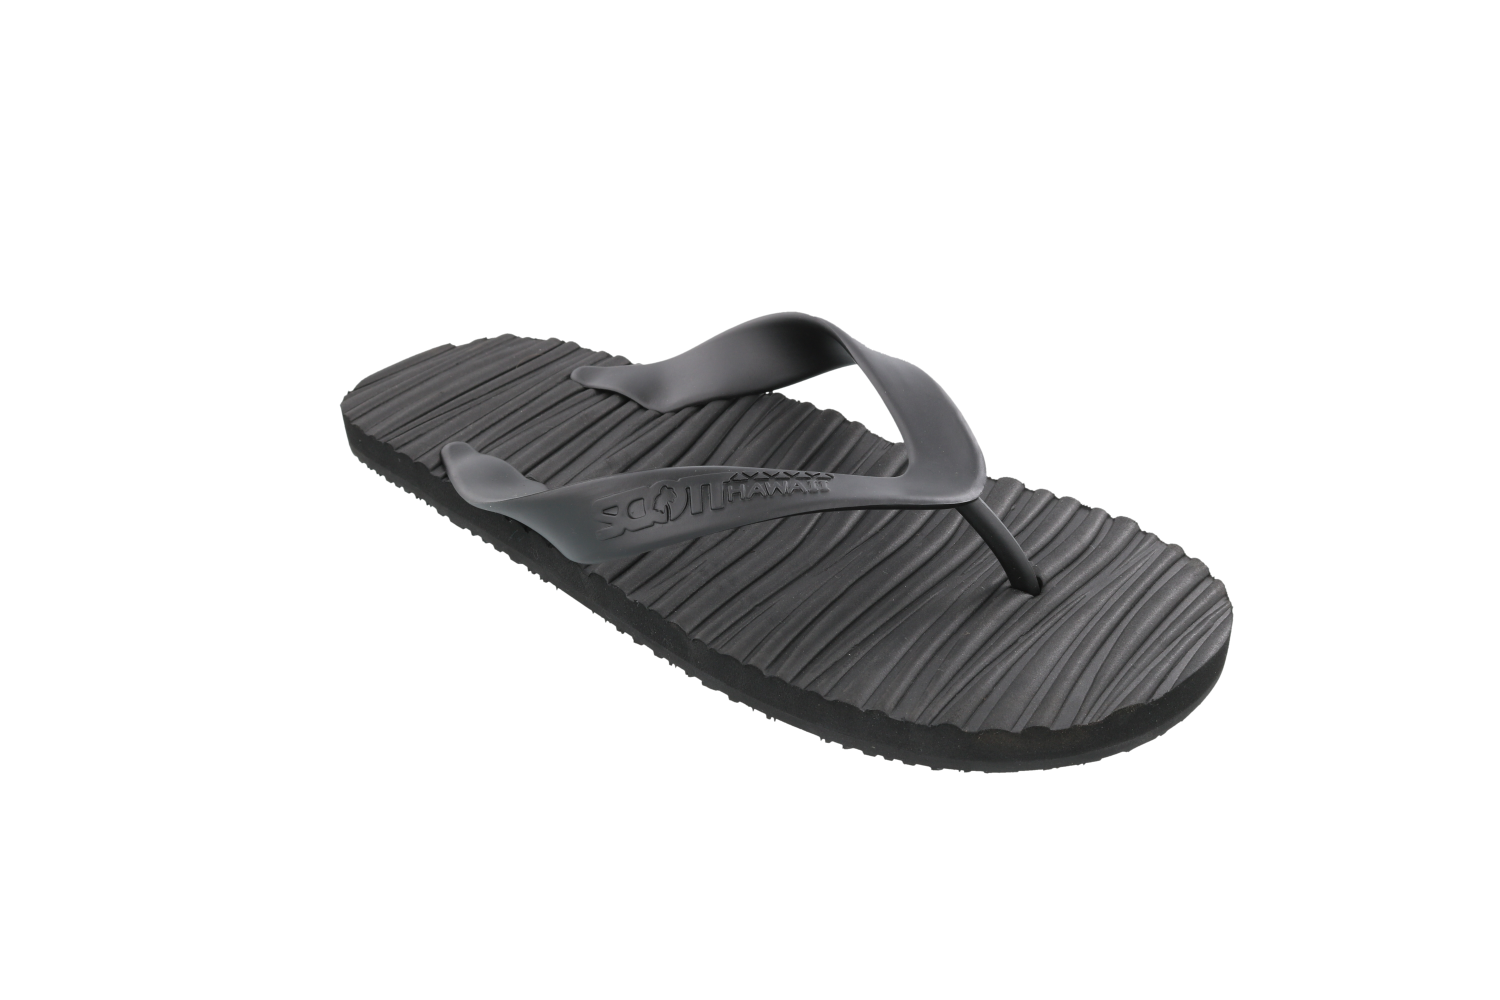 Scott Hawaii Pahoehoe Black Lava Design Rubber Slipper - AlohaShoes.com